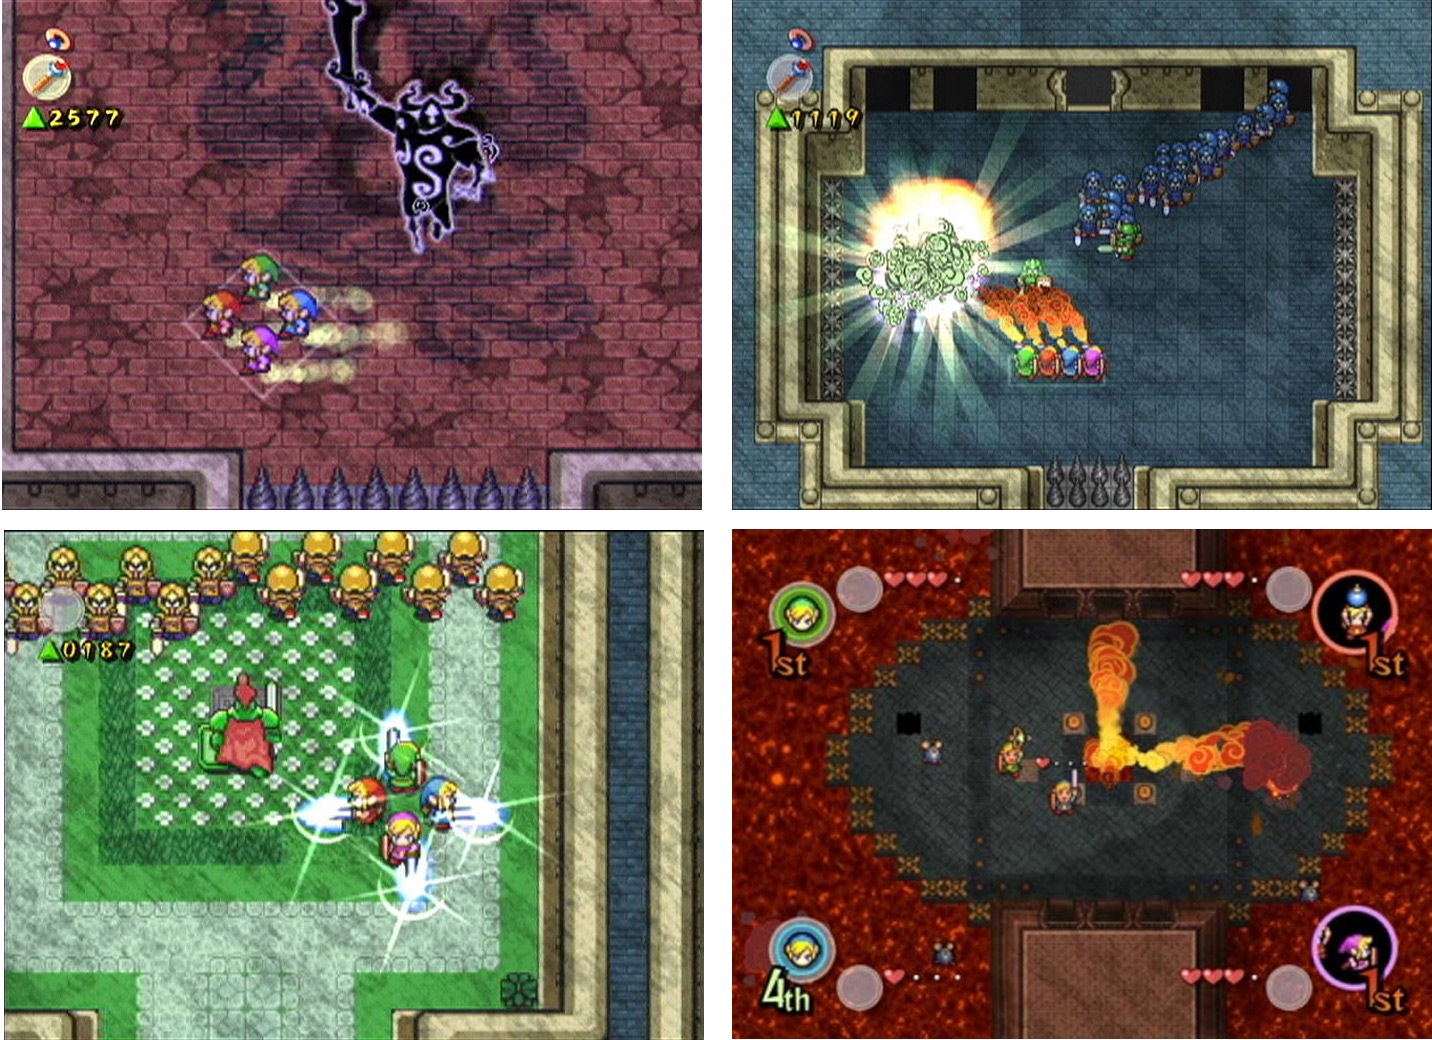 how to play four swords on gba emulator